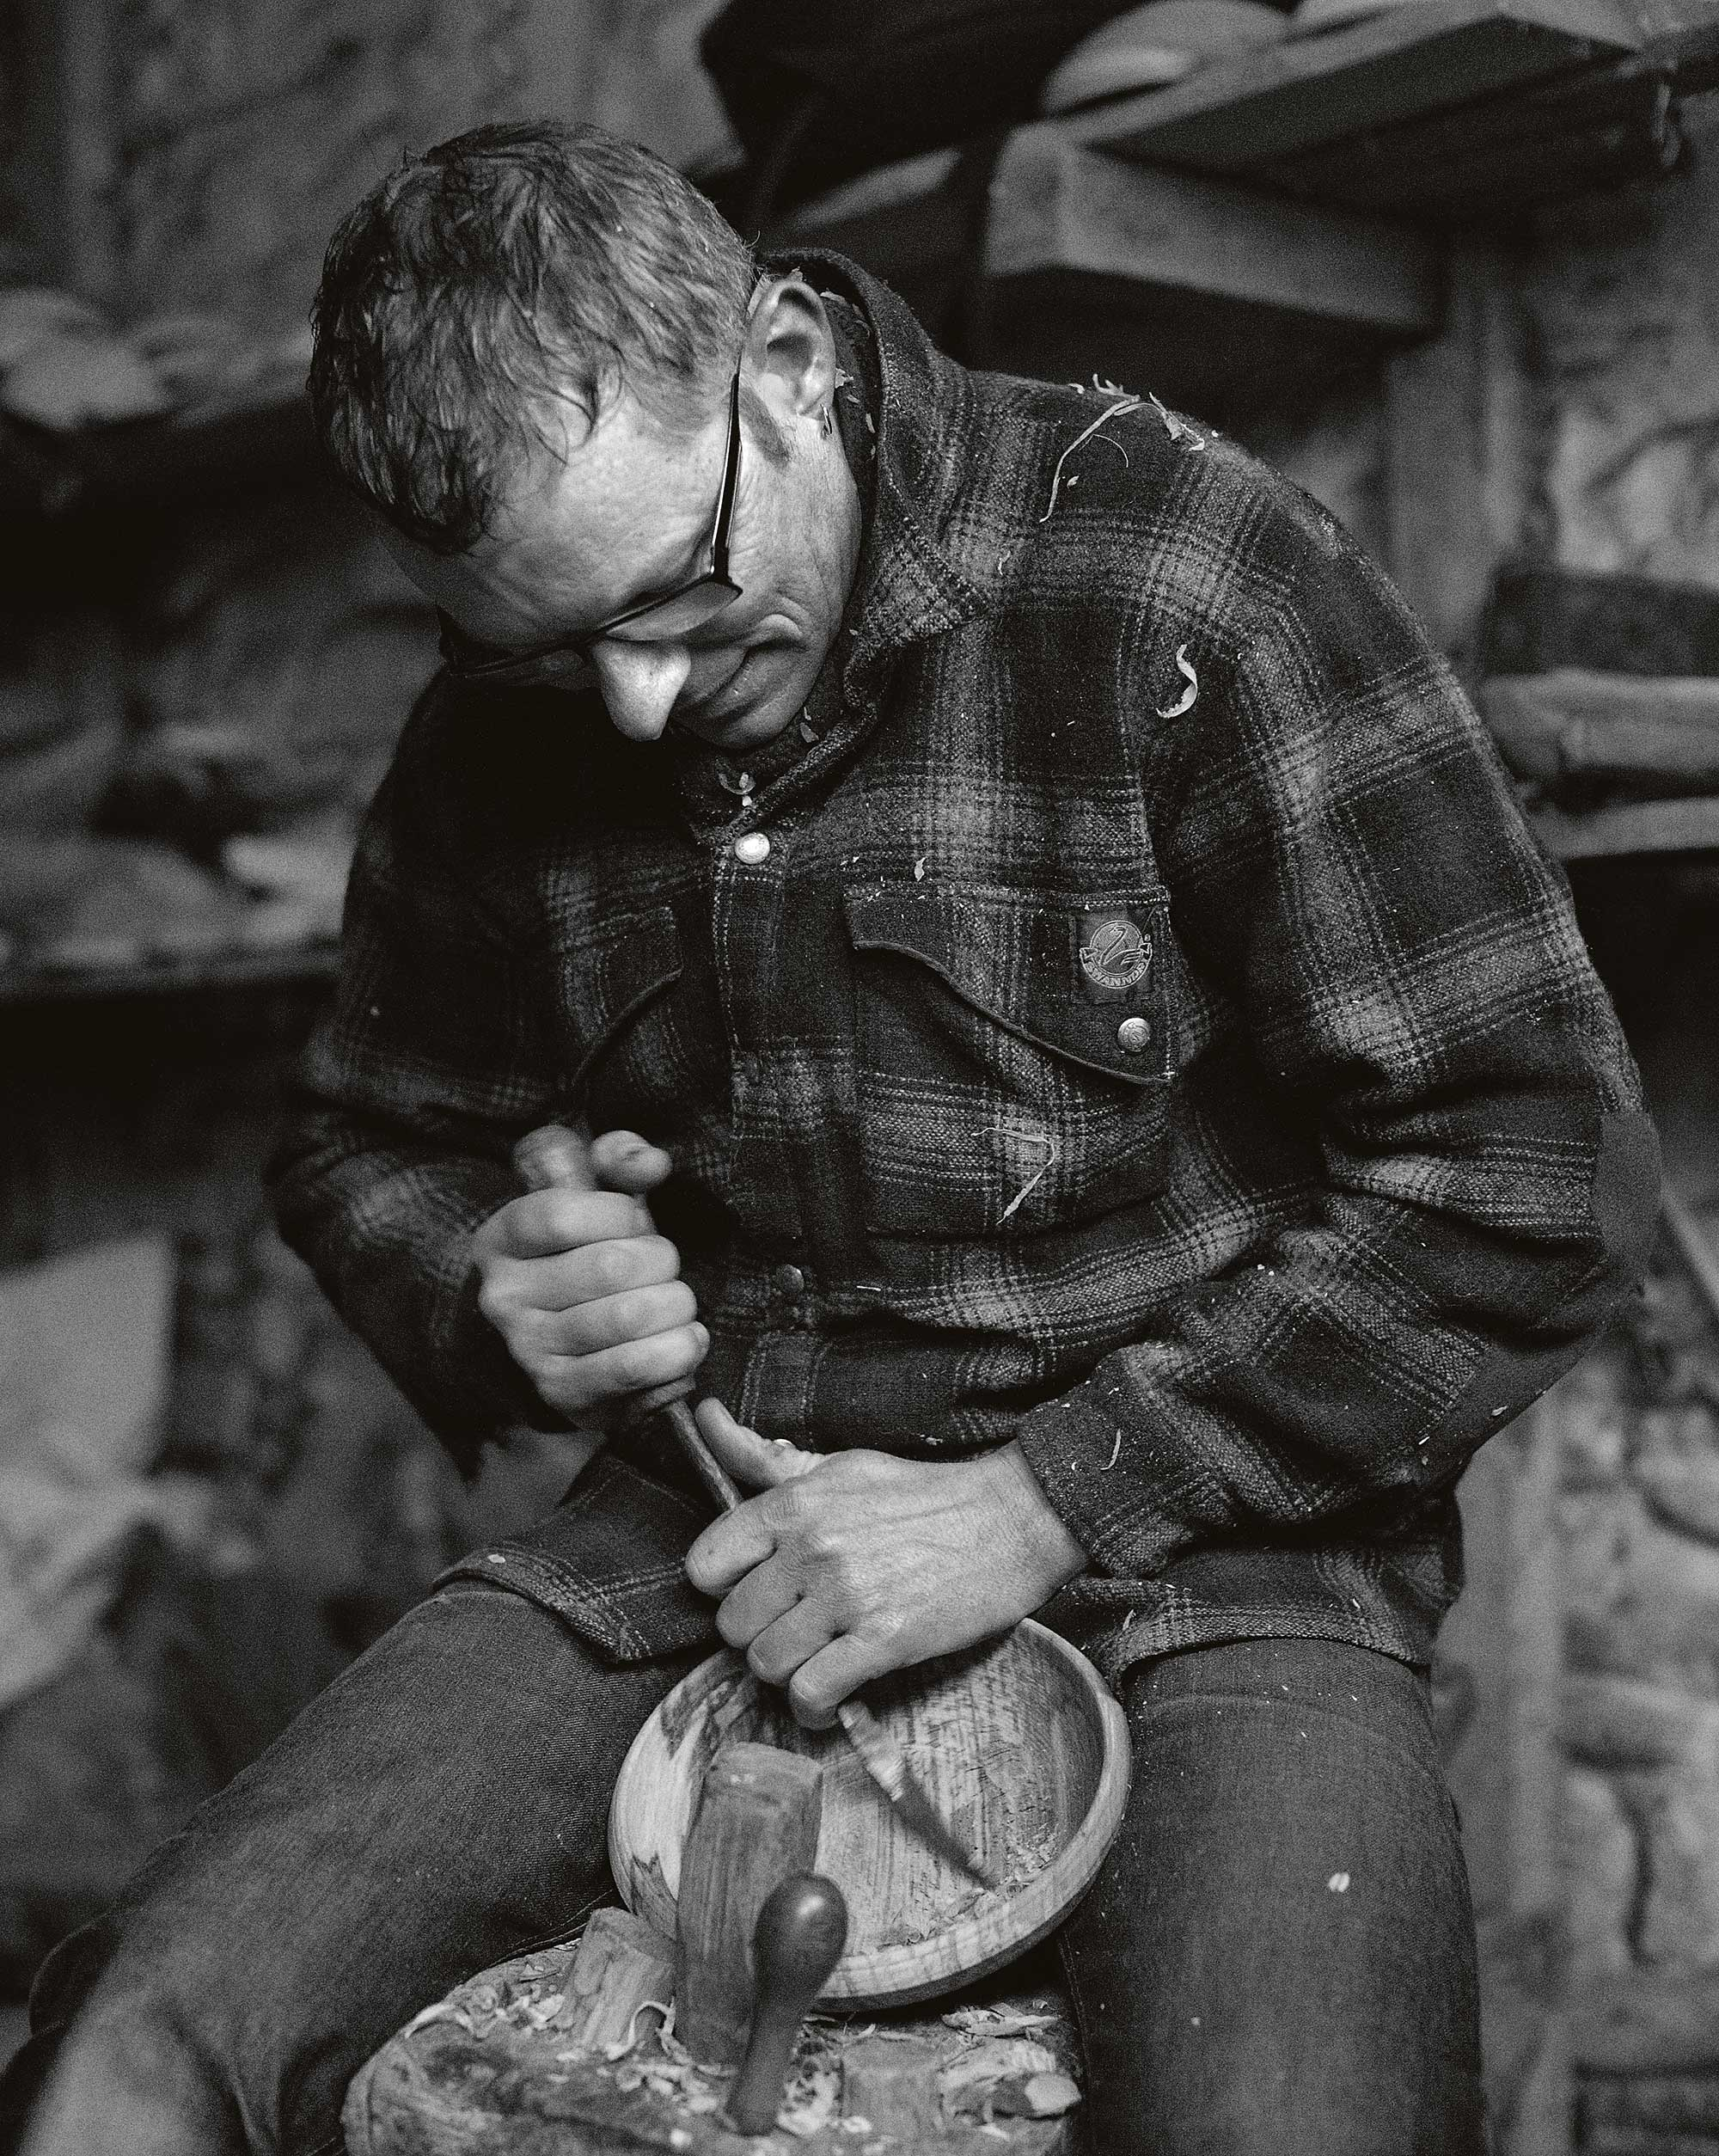 Portrait of Robin Wood carving wood in his workshop